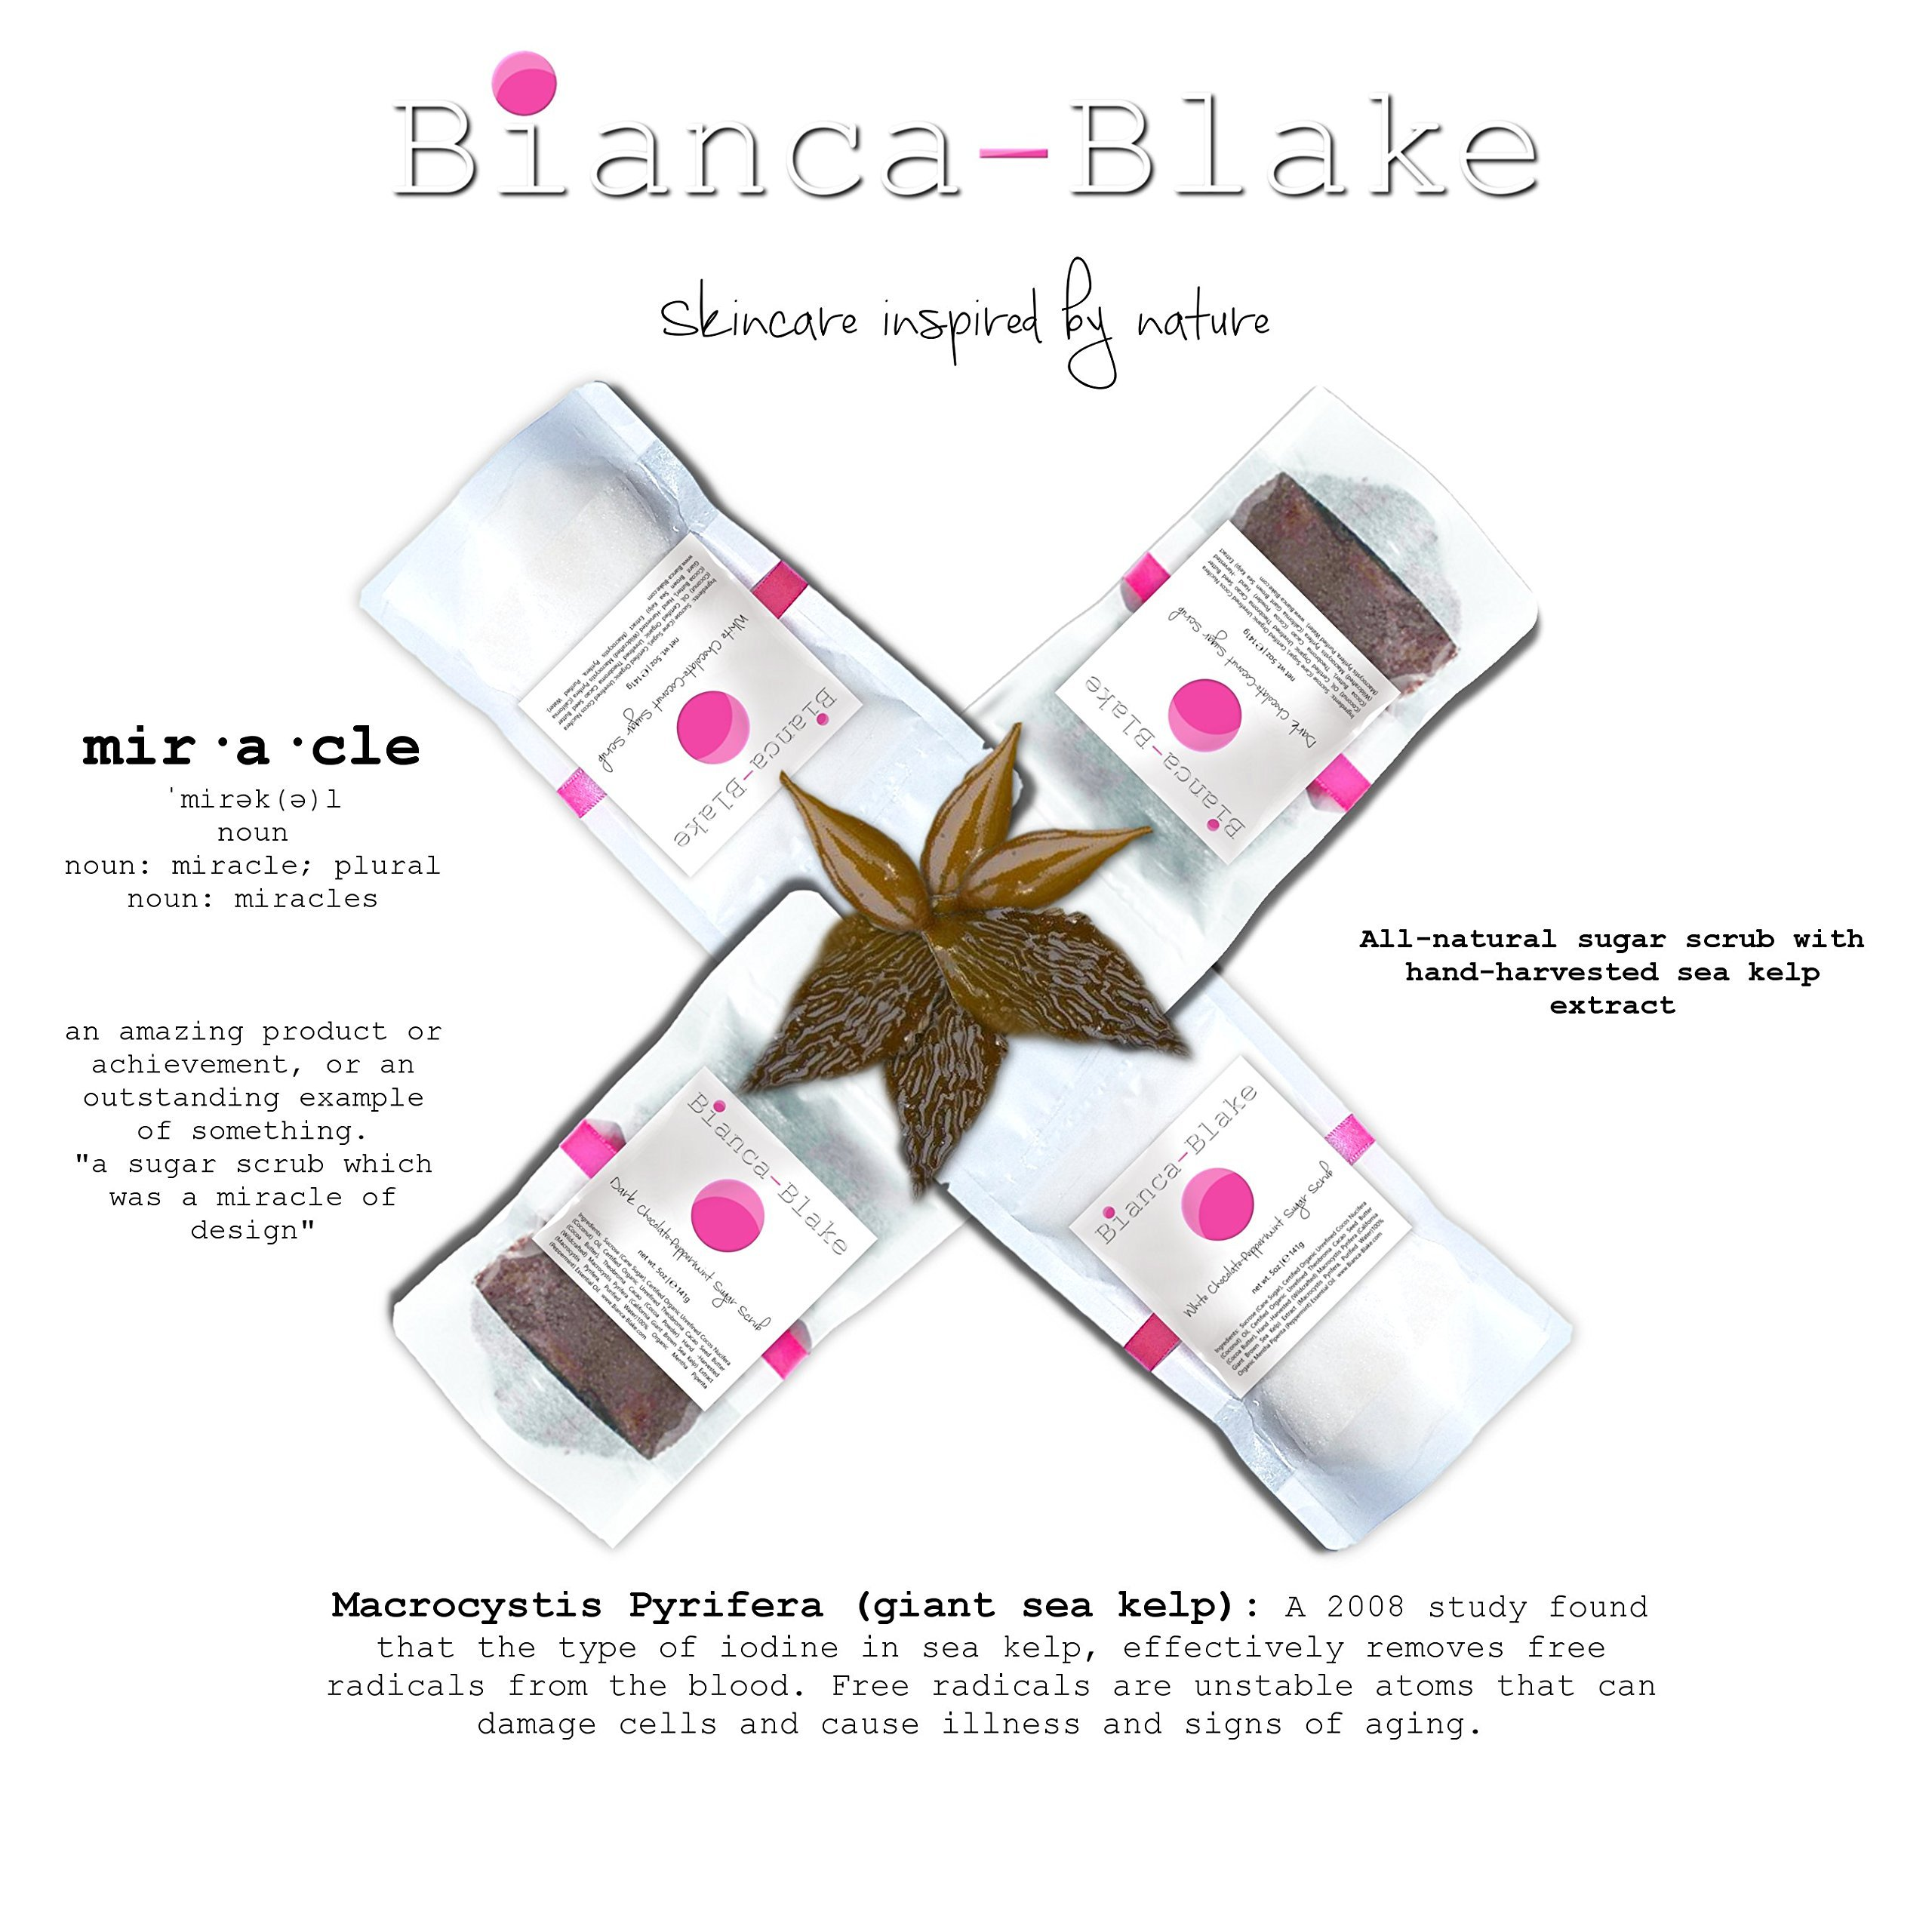 Natural Marine-Based Sugar Scrub made with organic, unrefined coconut oil and cocoa butter, and hand-harvested sea kelp extract